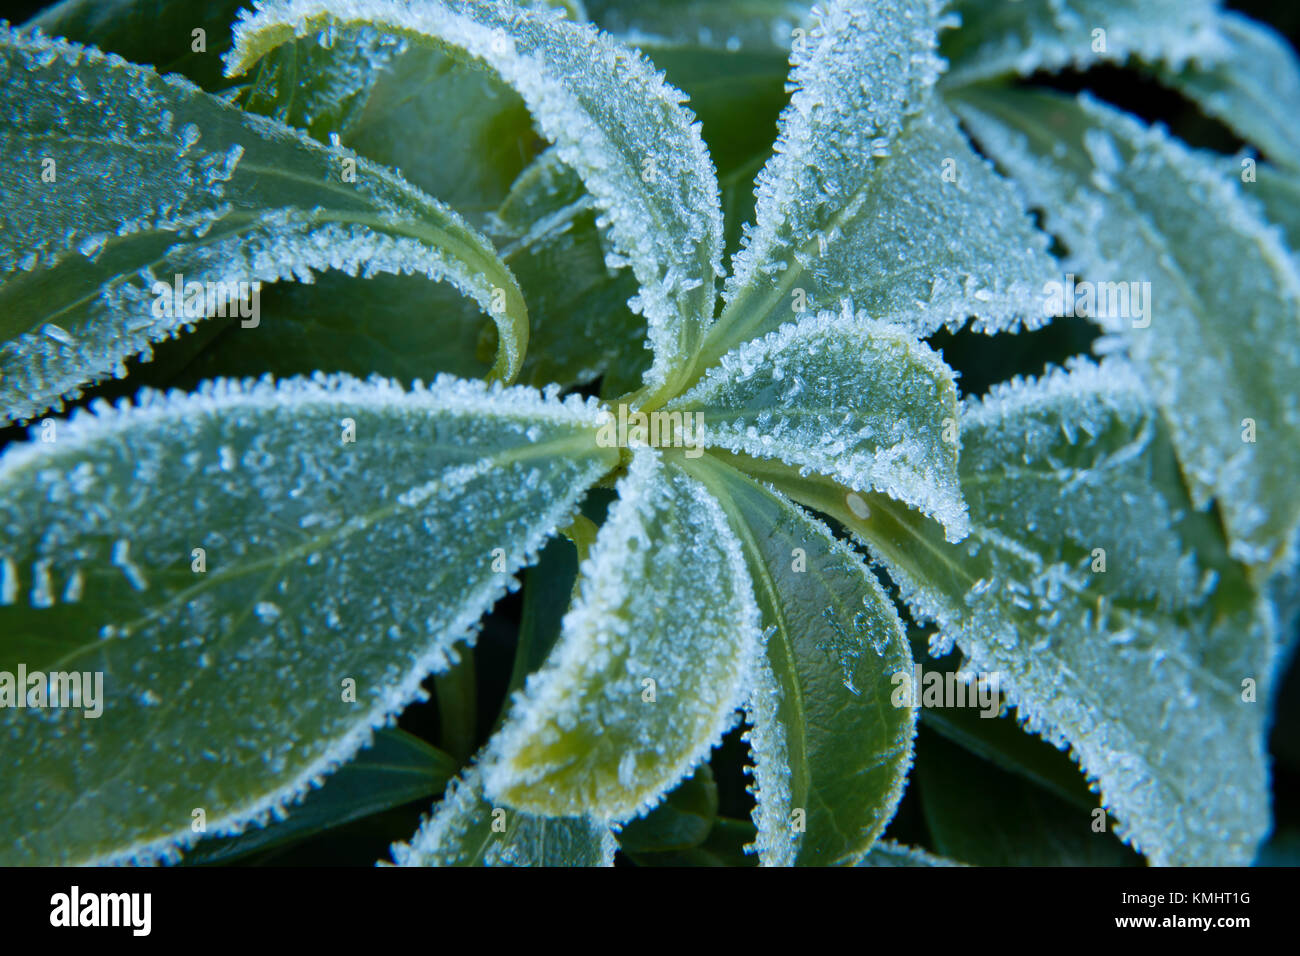 Frost on Leaves of a Plant - Stock Image